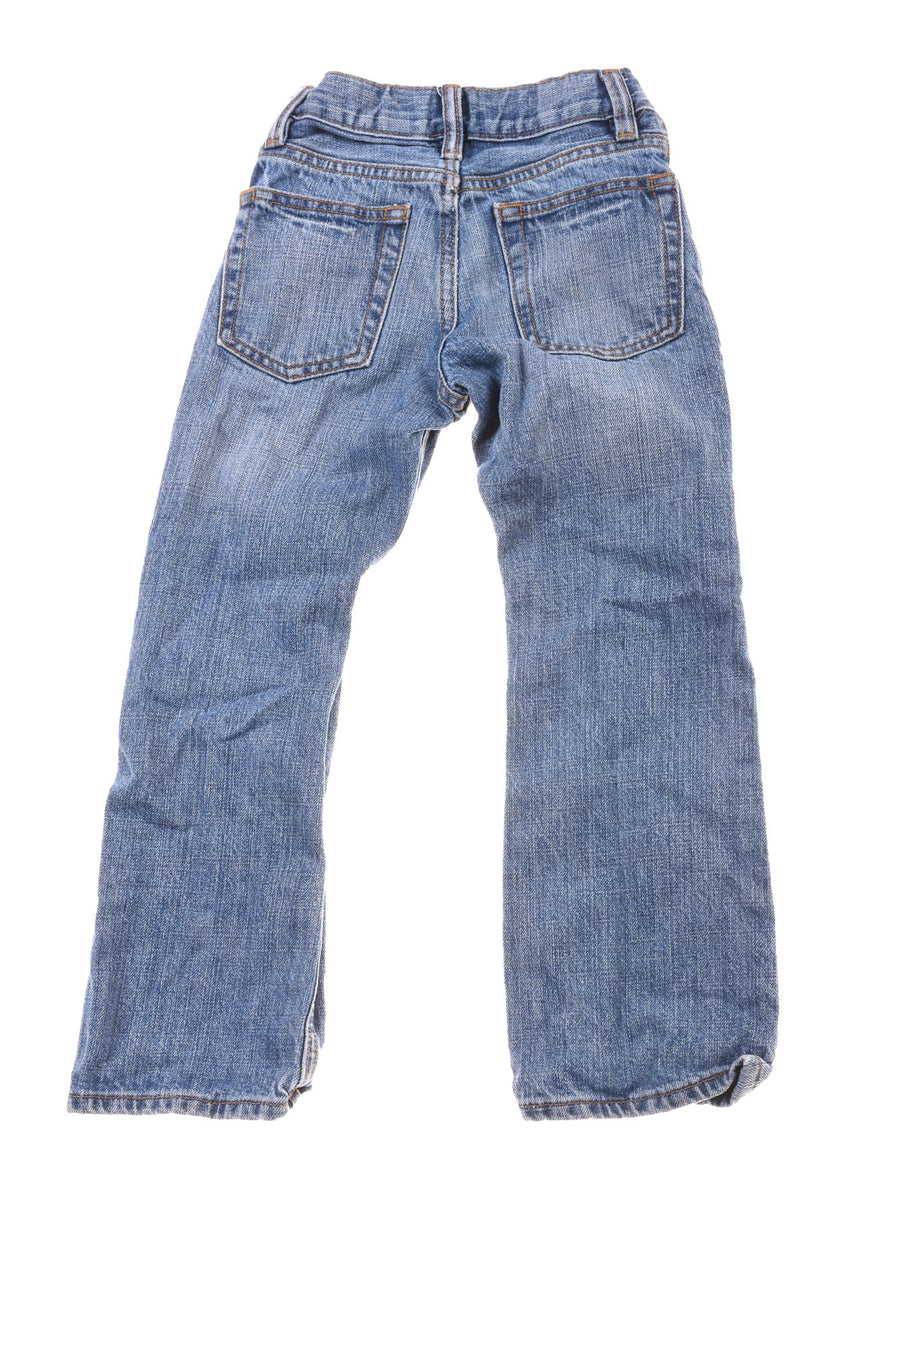 USED Gap Kids Toddler Boy's Jeans 6 Blue